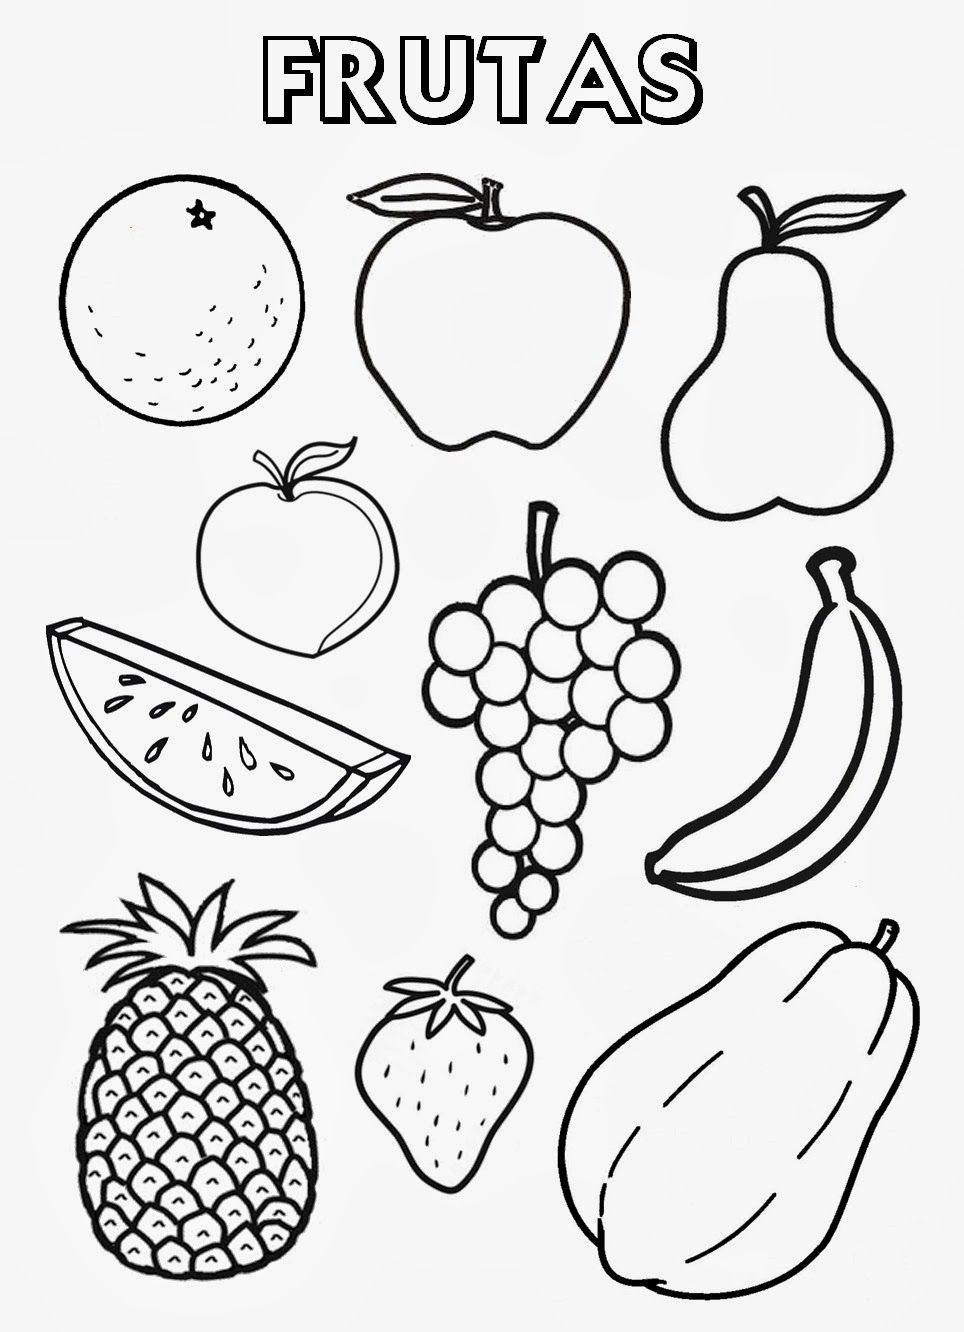 Fruits Spanish Coloring Page